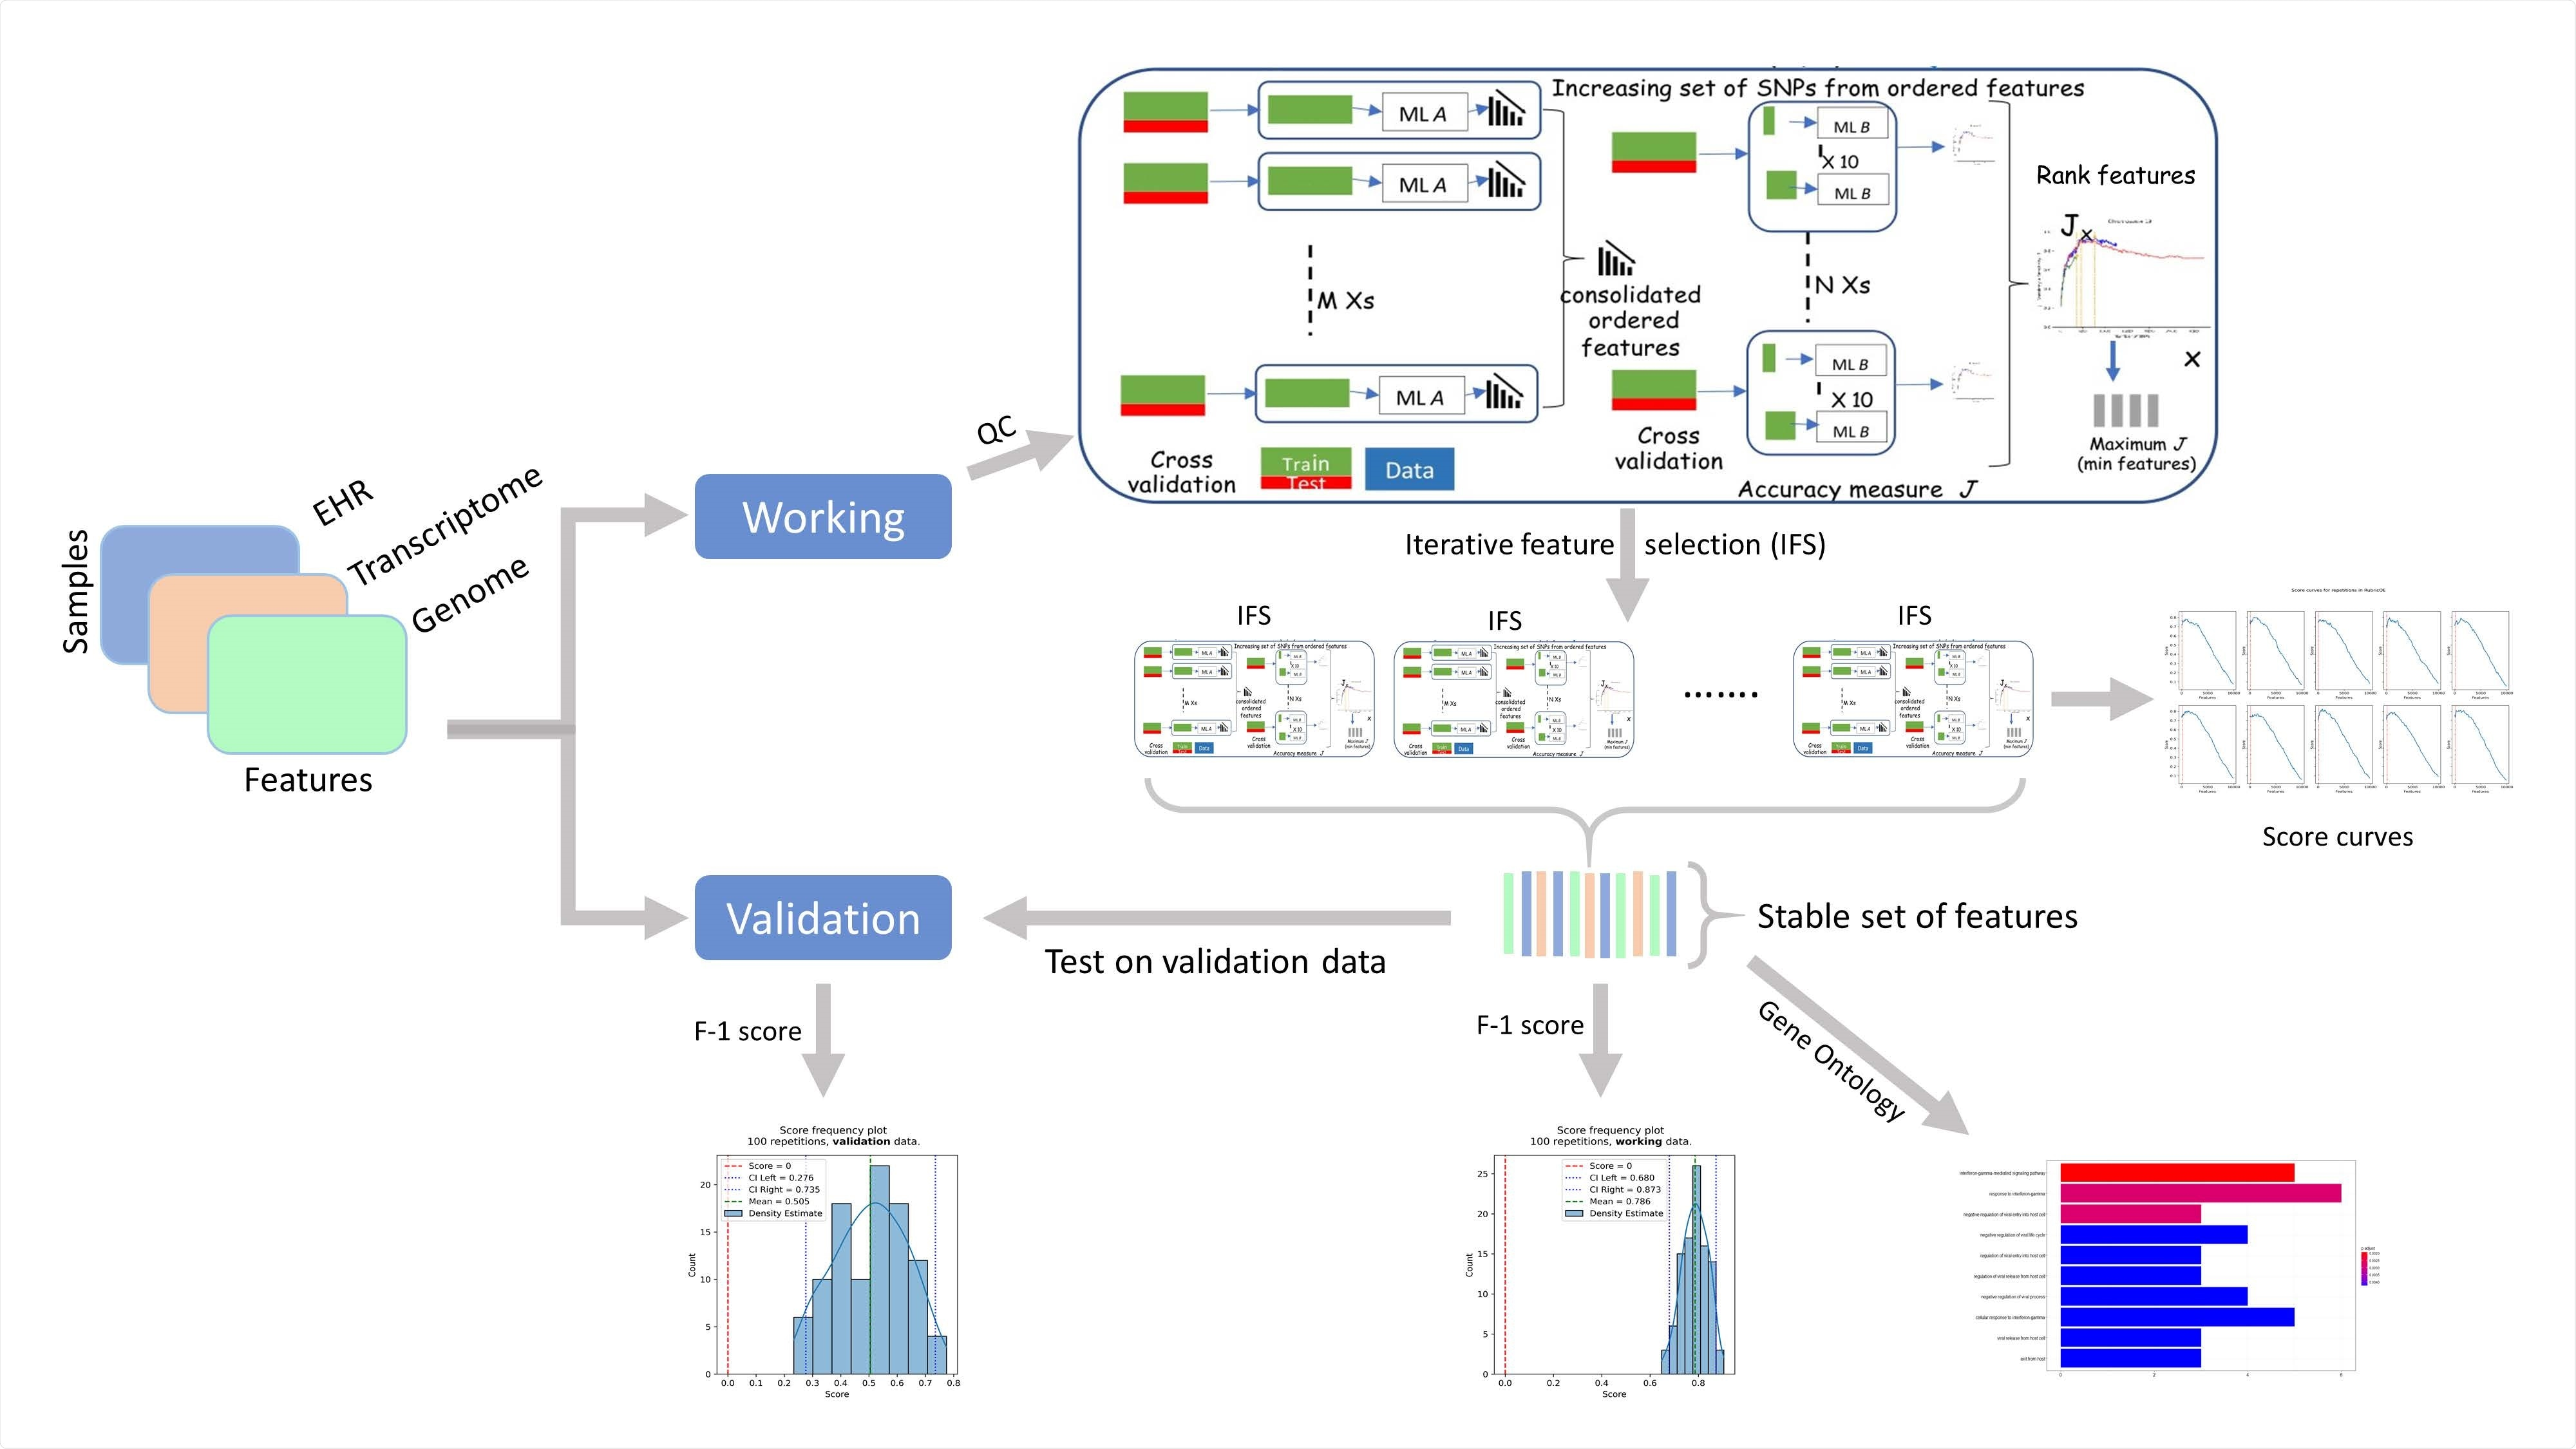 Components of RubricOE, as ensemble ML pipeline extracting stable features from multi-omics data.